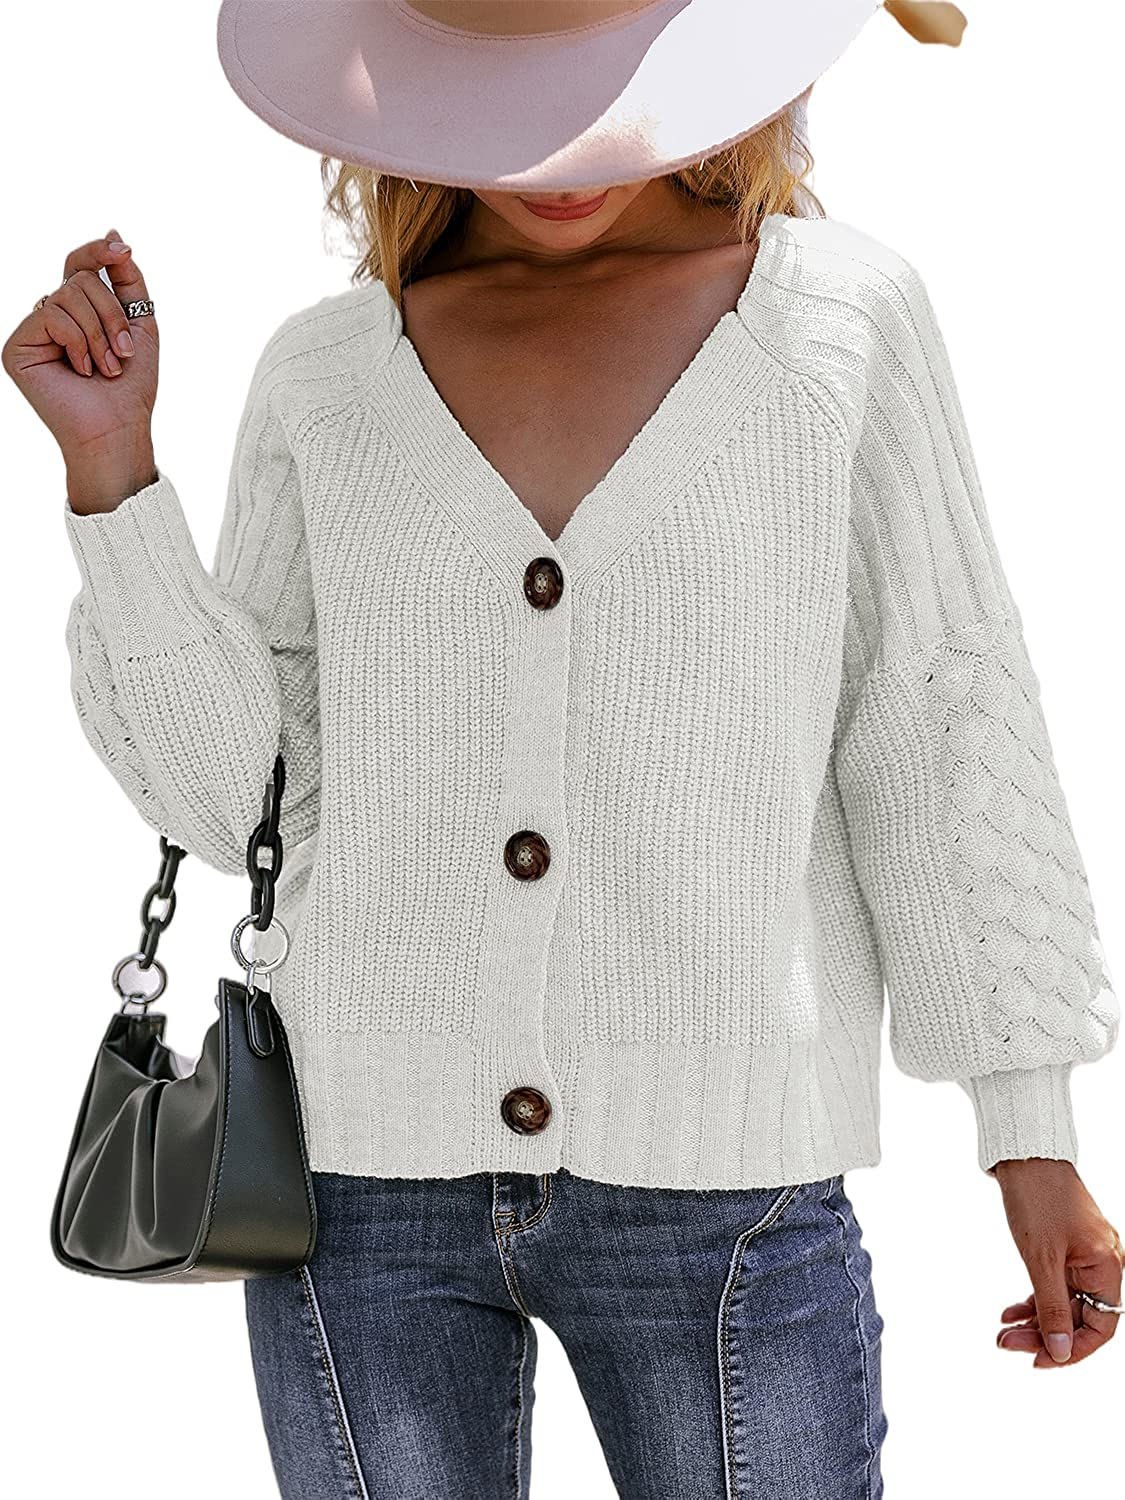 Miessial Women's Button Down Long Sleeve Cardigan Sweaters Chunky Cable Knit Crop Sweater Top